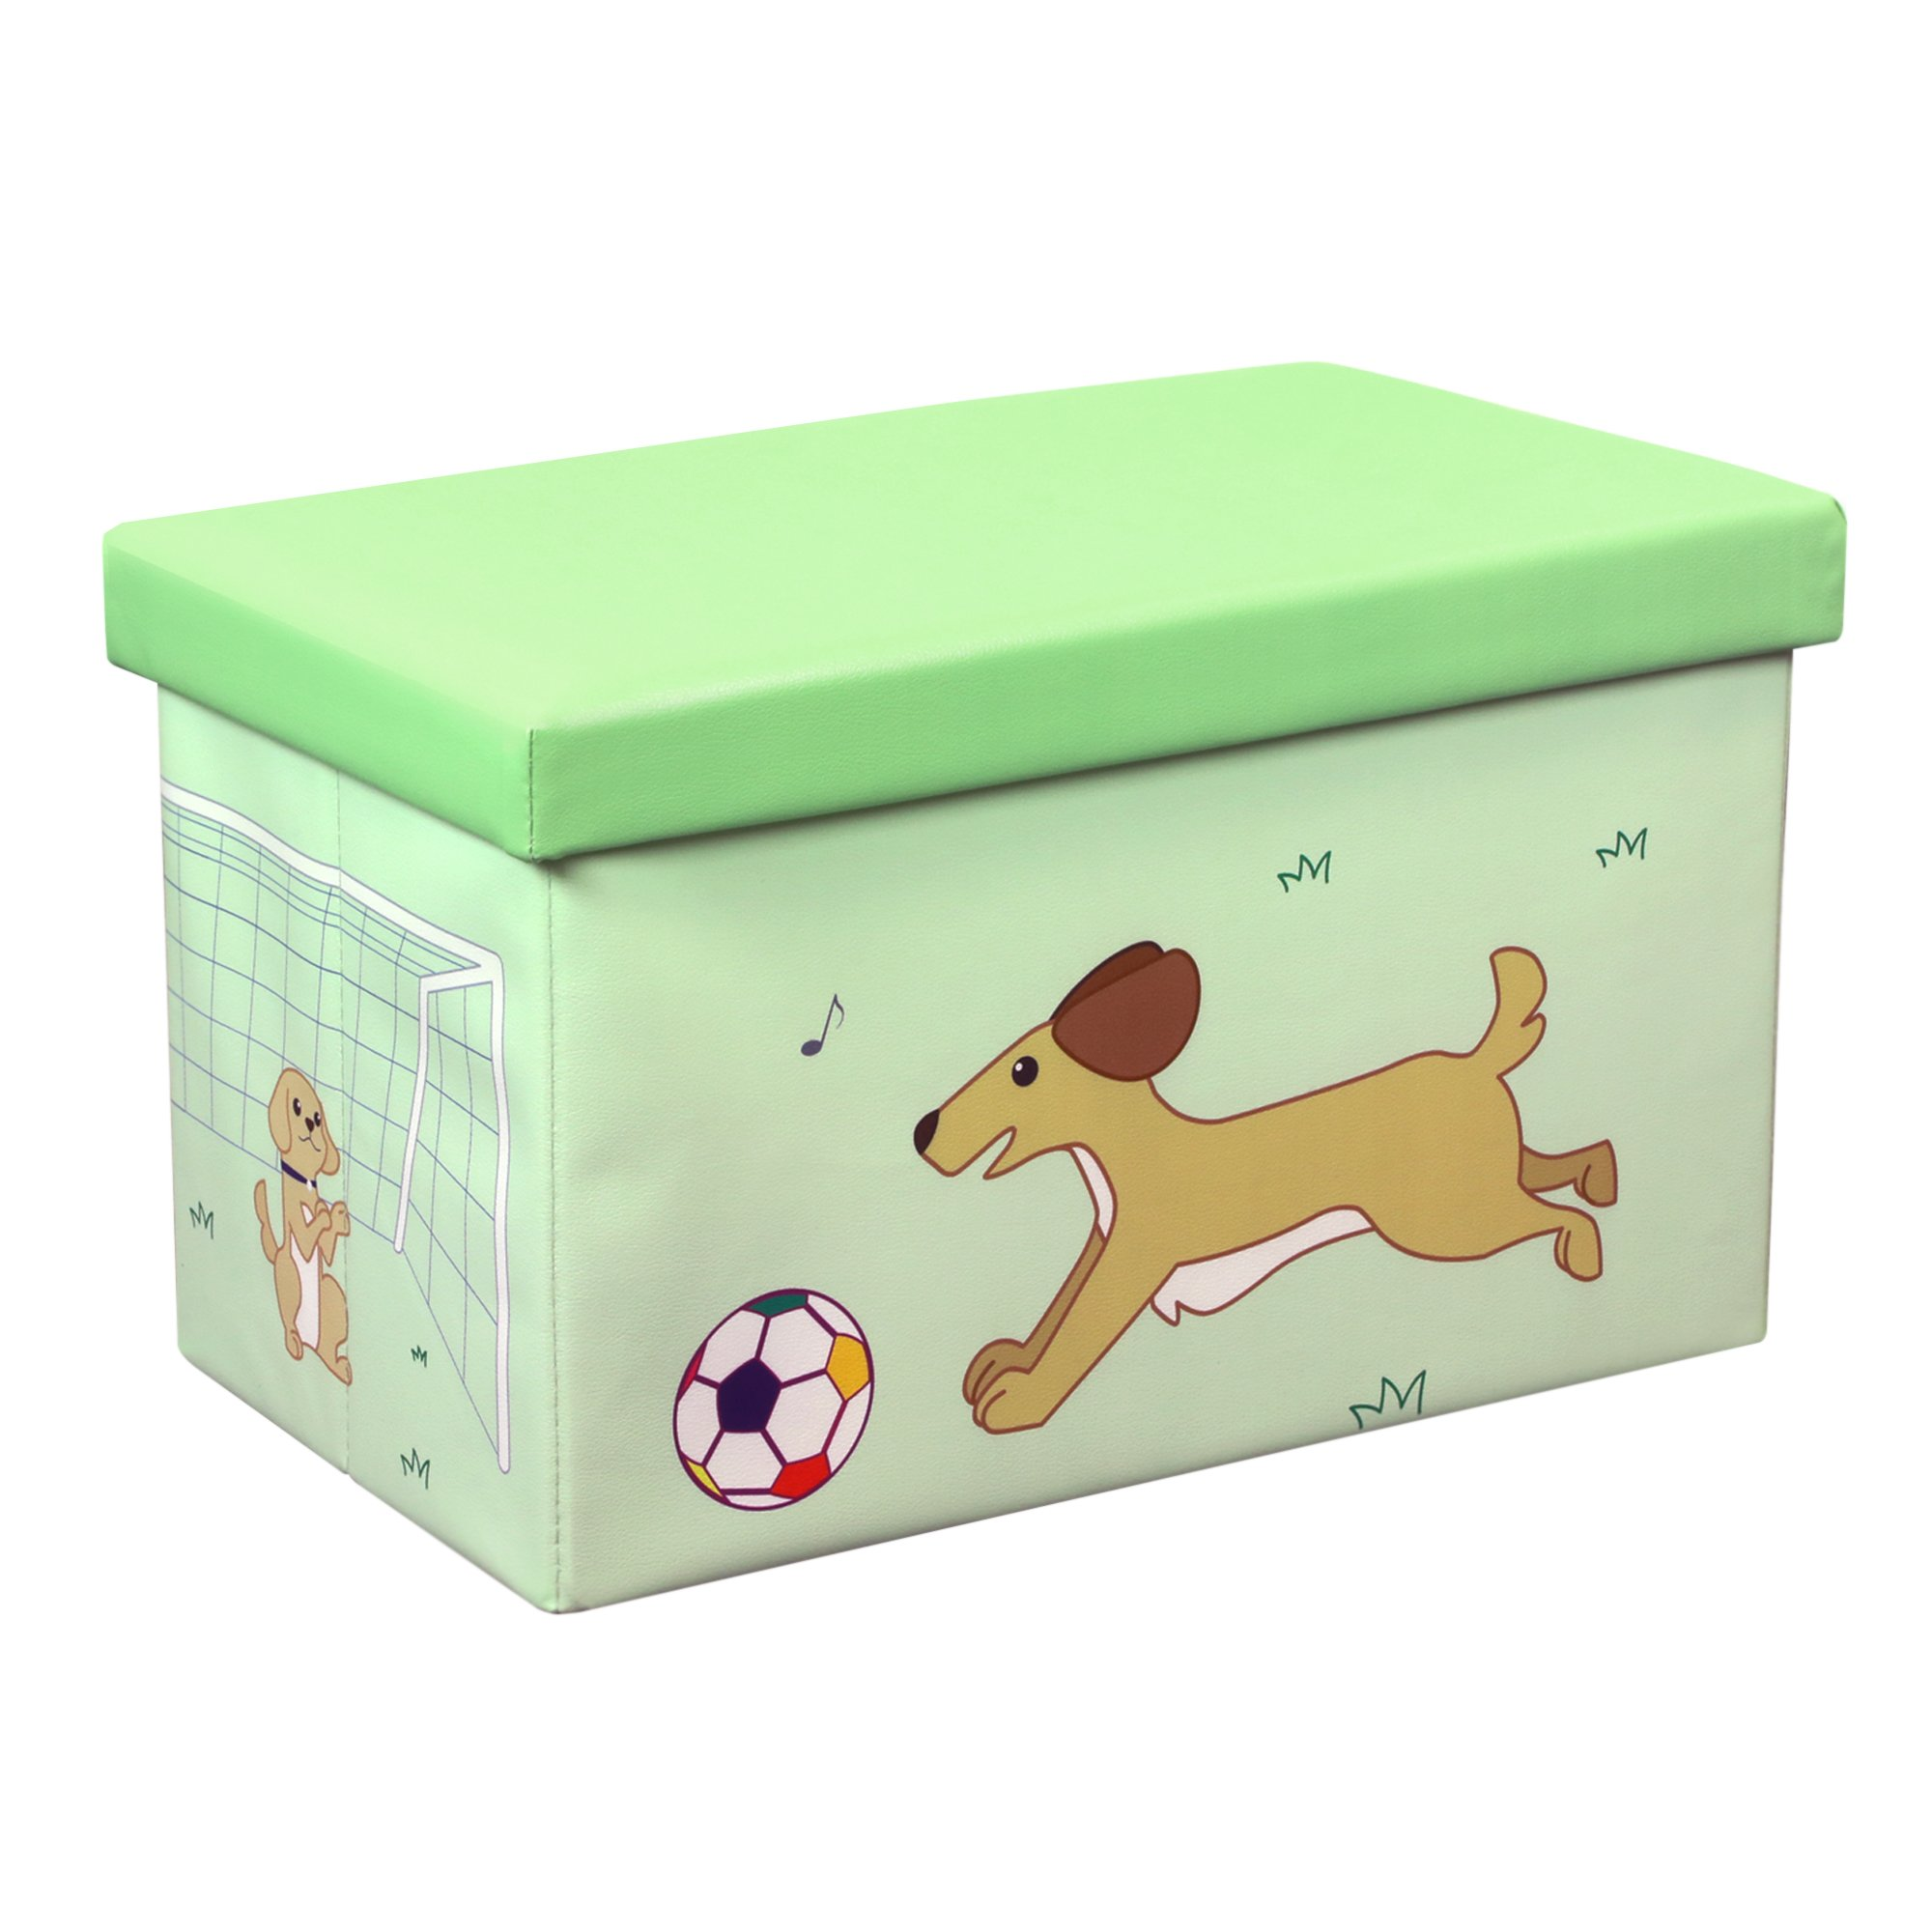 Otto & Ben 23'' Toy Box - Folding Storage Ottoman Chest with Foam Cushion Seat, Washable Faux Leather Foot Rest Stools for Kids, Dog and Ball